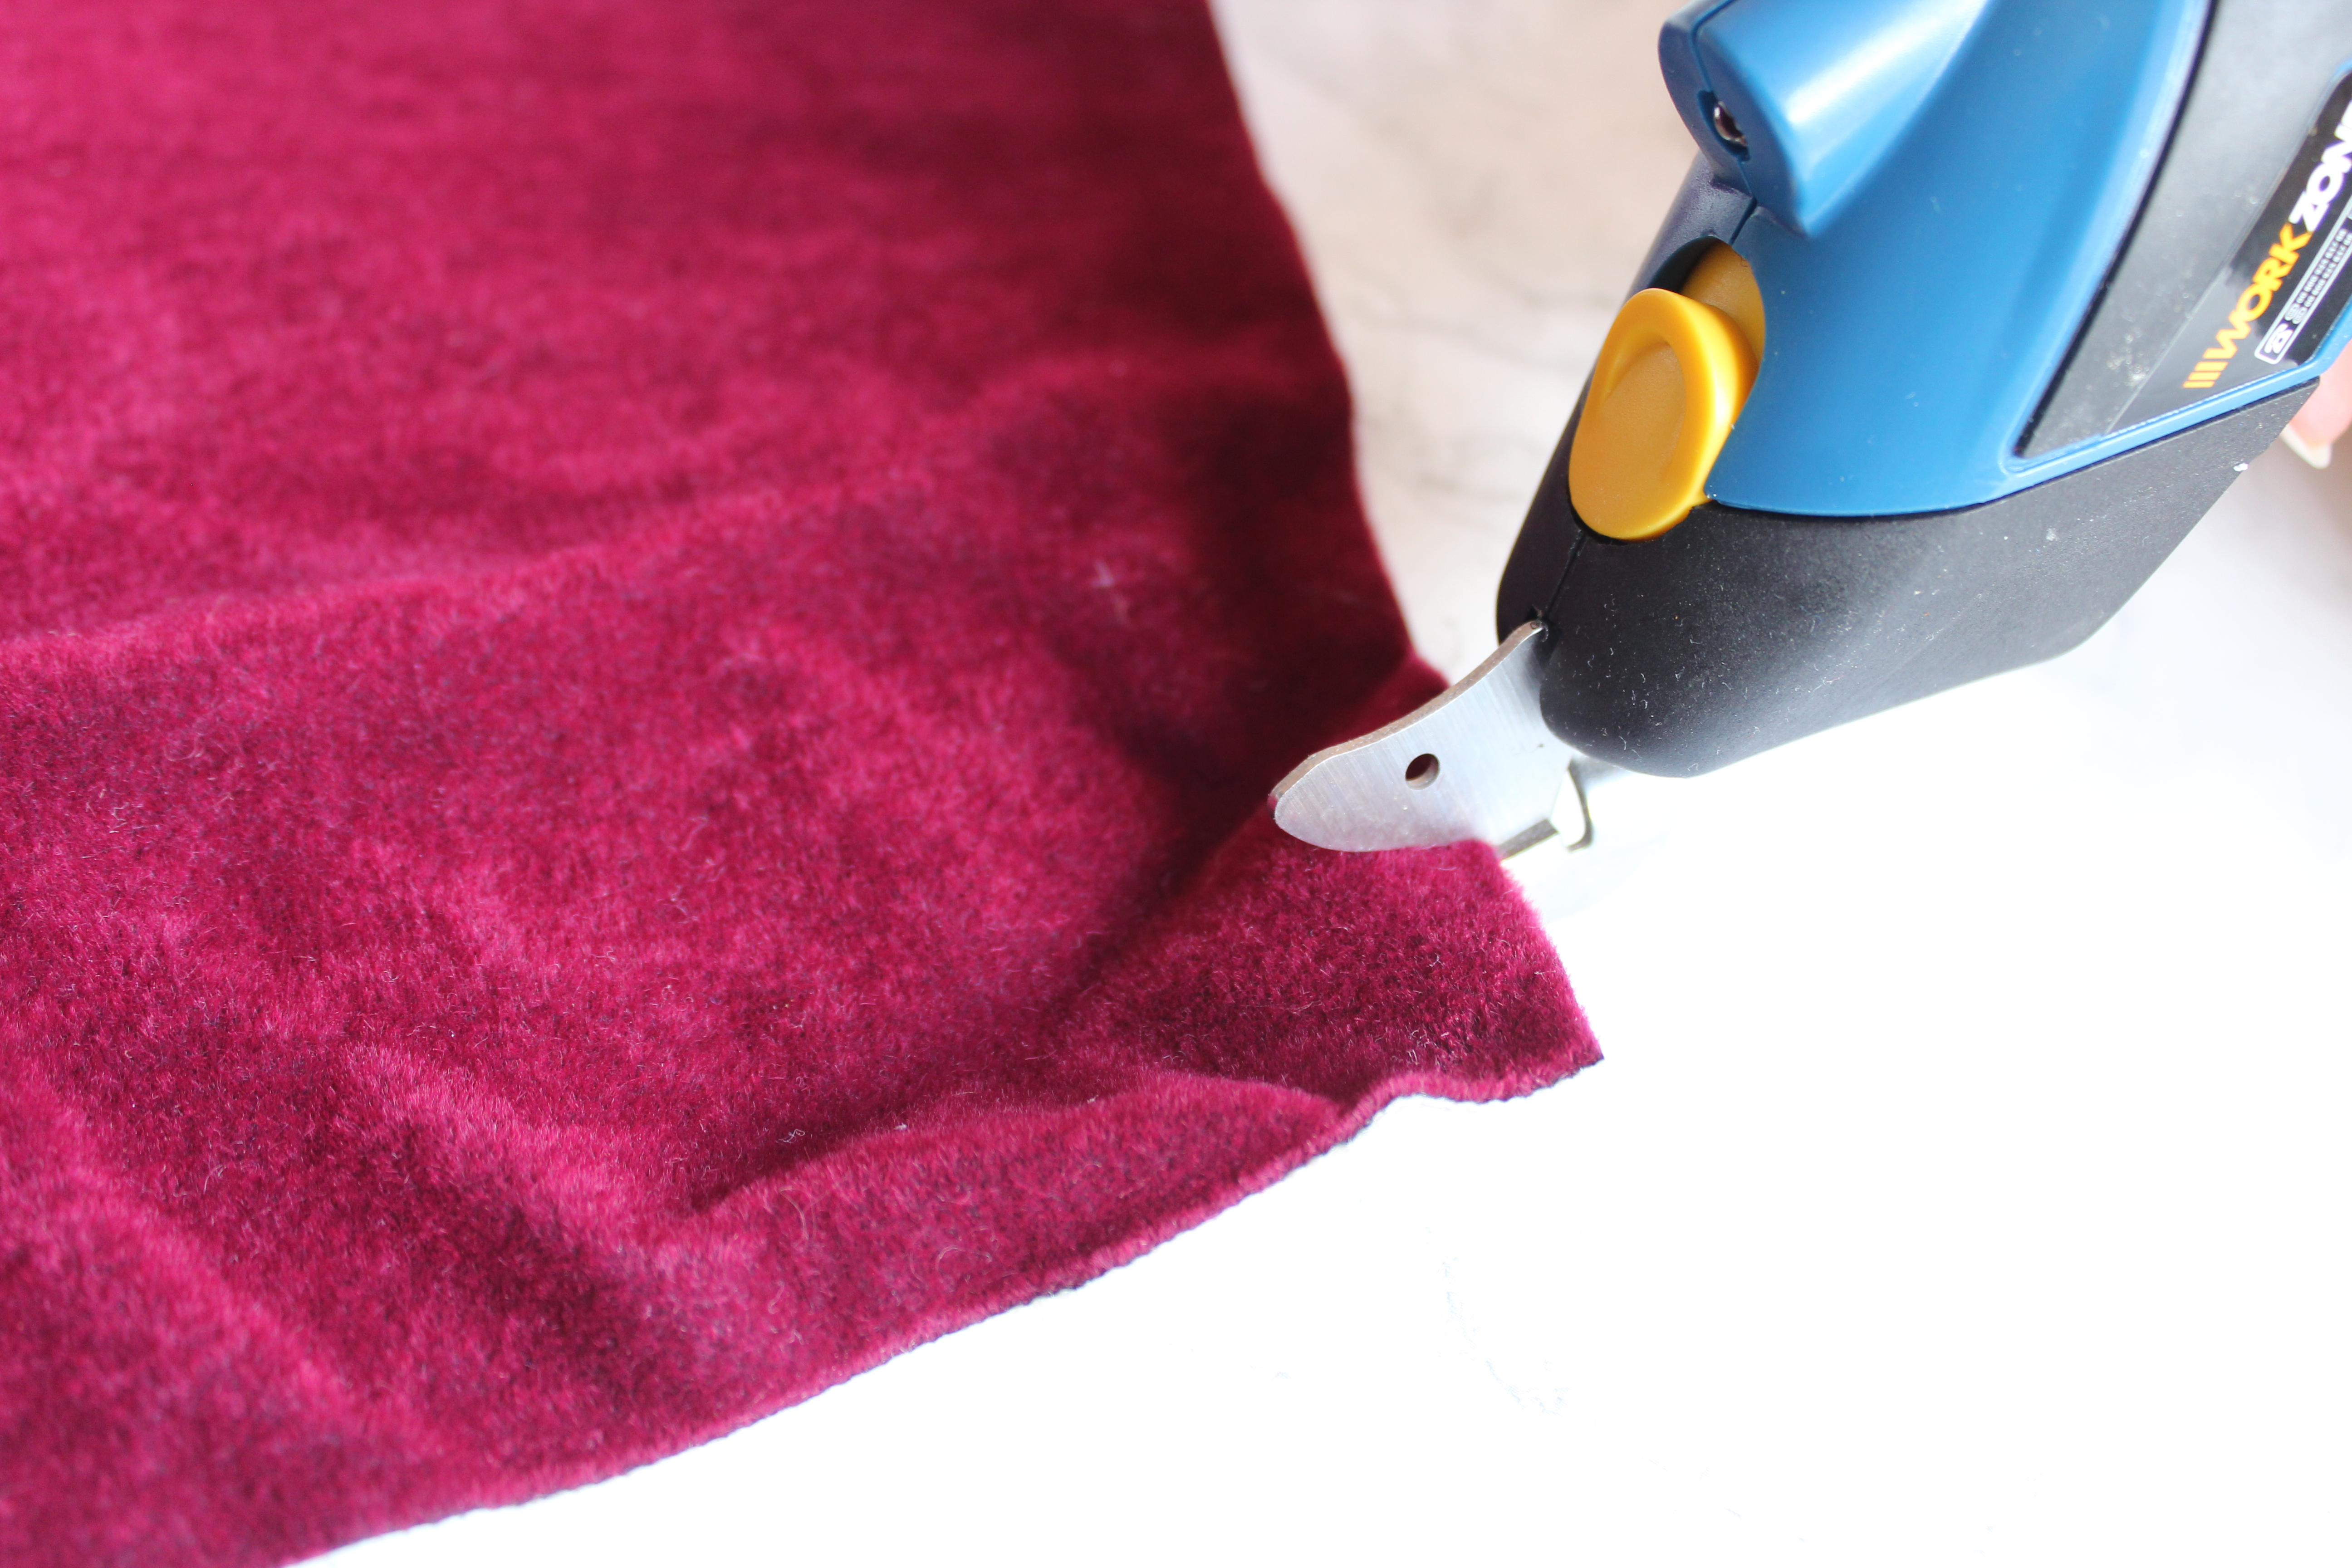 Cutting thick red curtain fabric with the Aldi Workzone Cordless Cutter